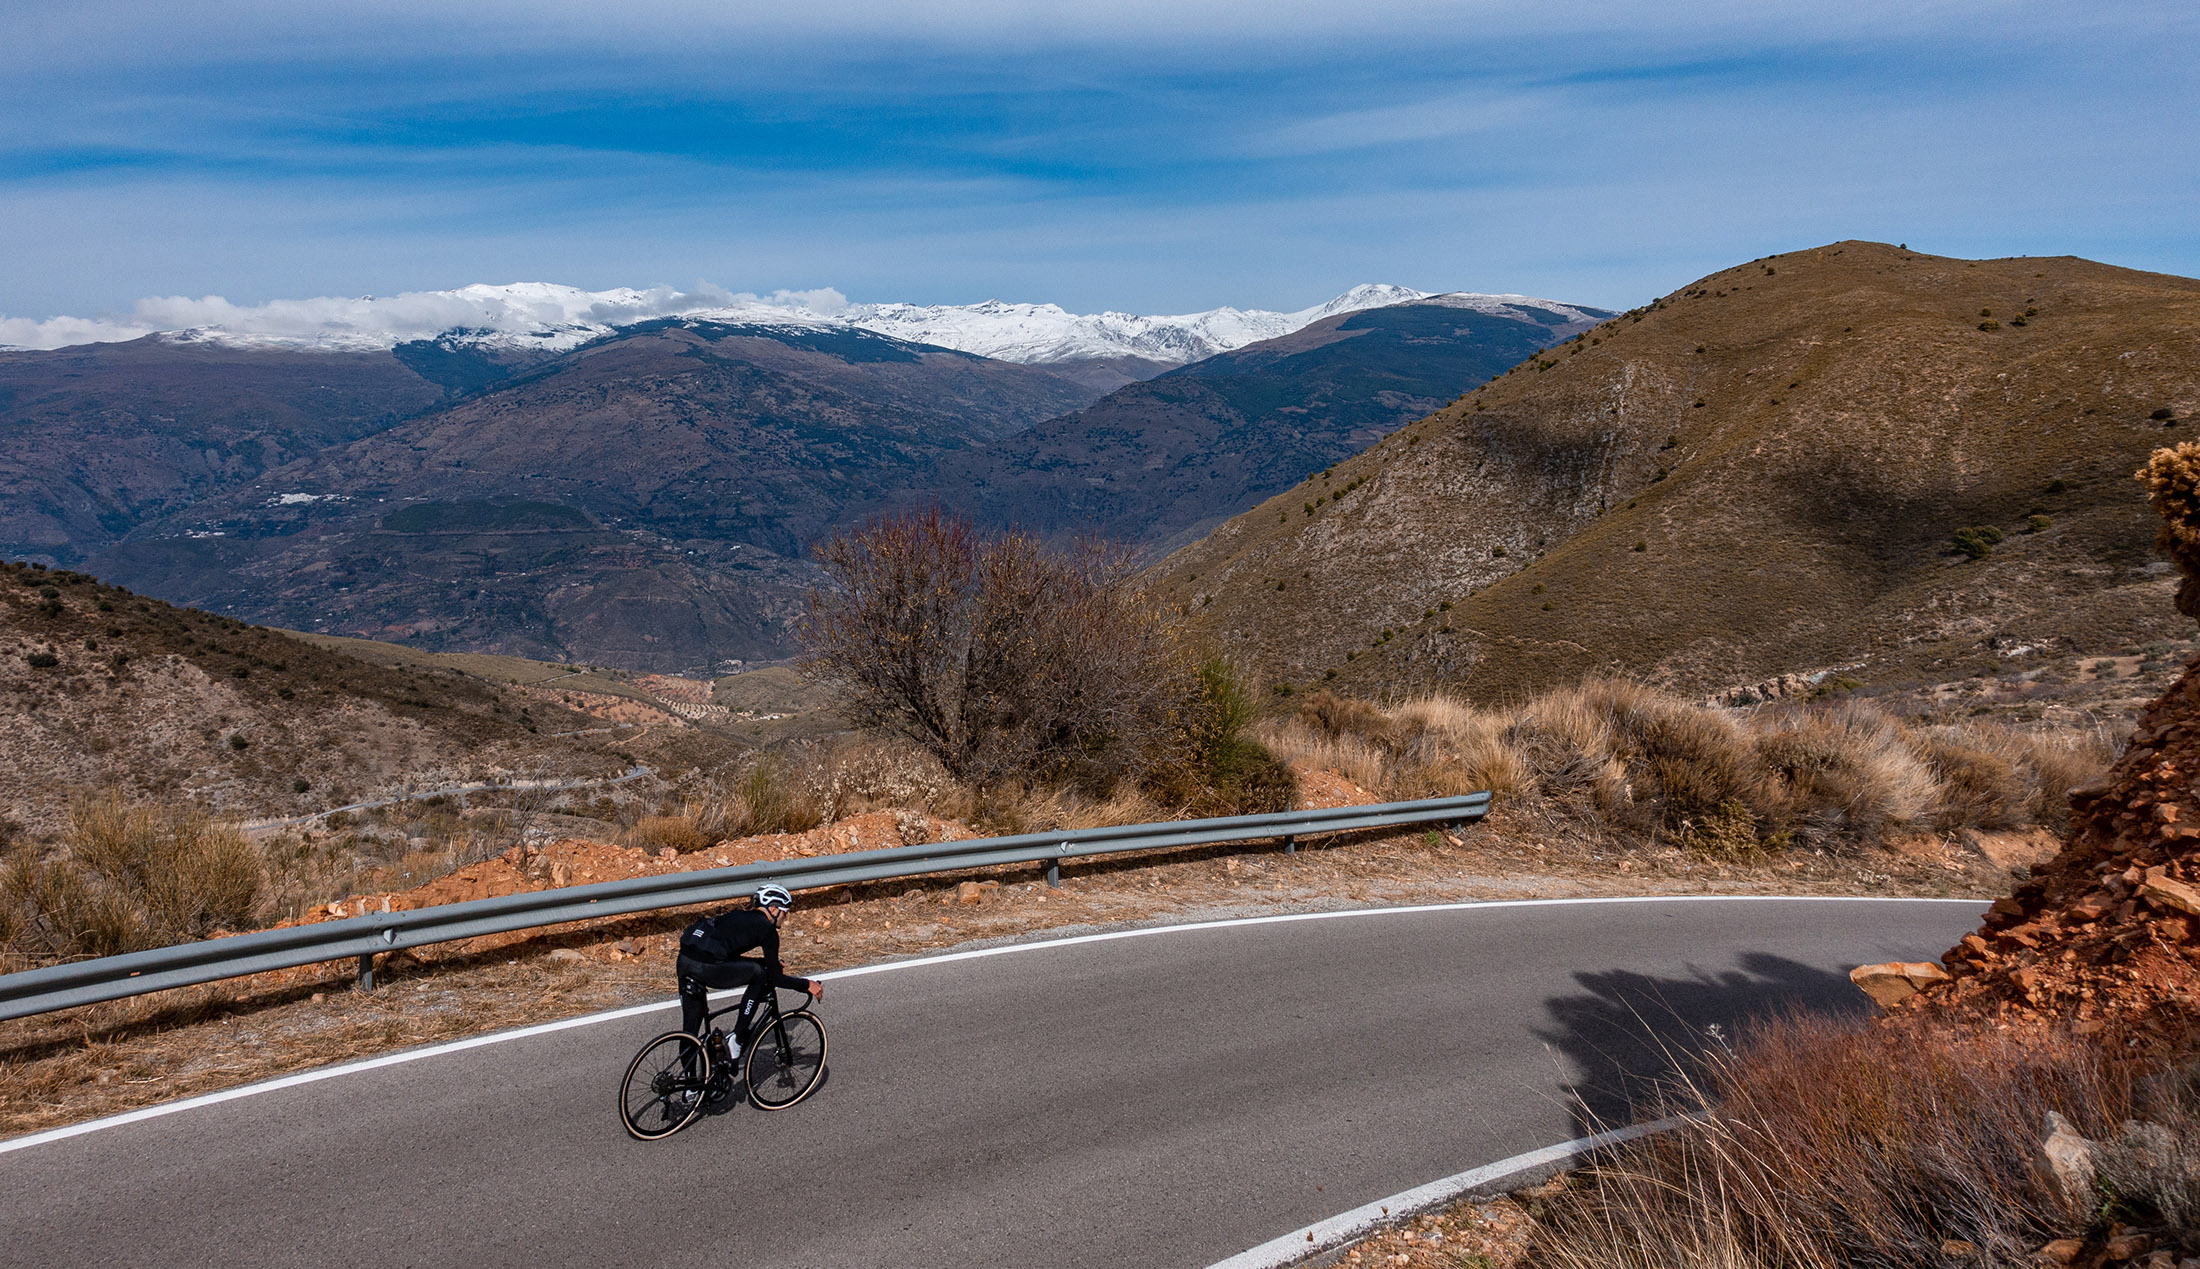 empty roads of Andalusia (Sierra Nevada) cyclist wear all black cycling luxa kit